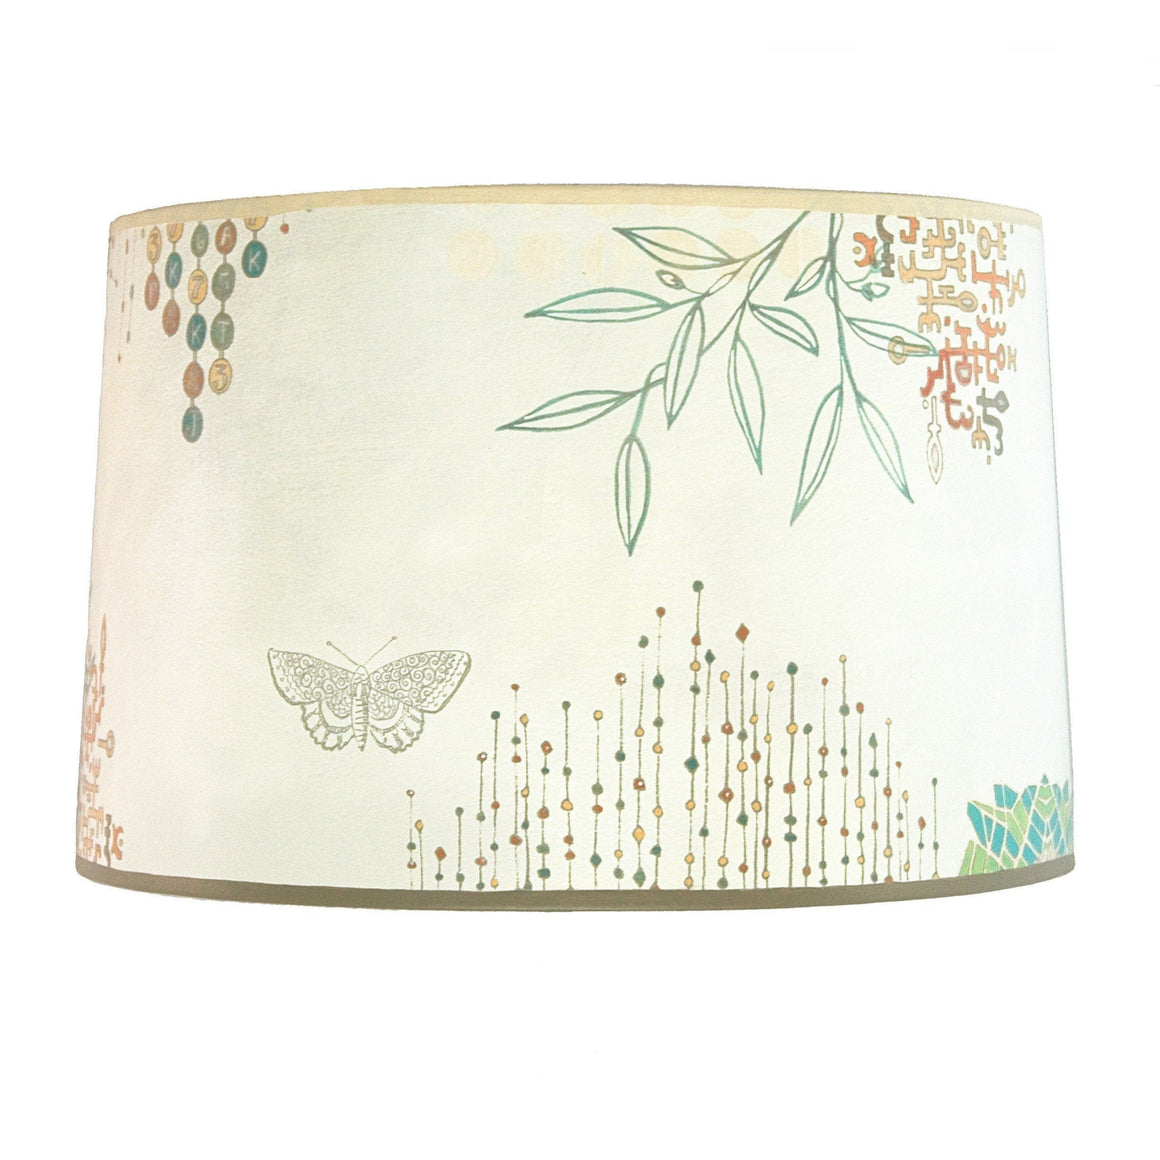 Large Drum Lamp Shade in Ecru Journey